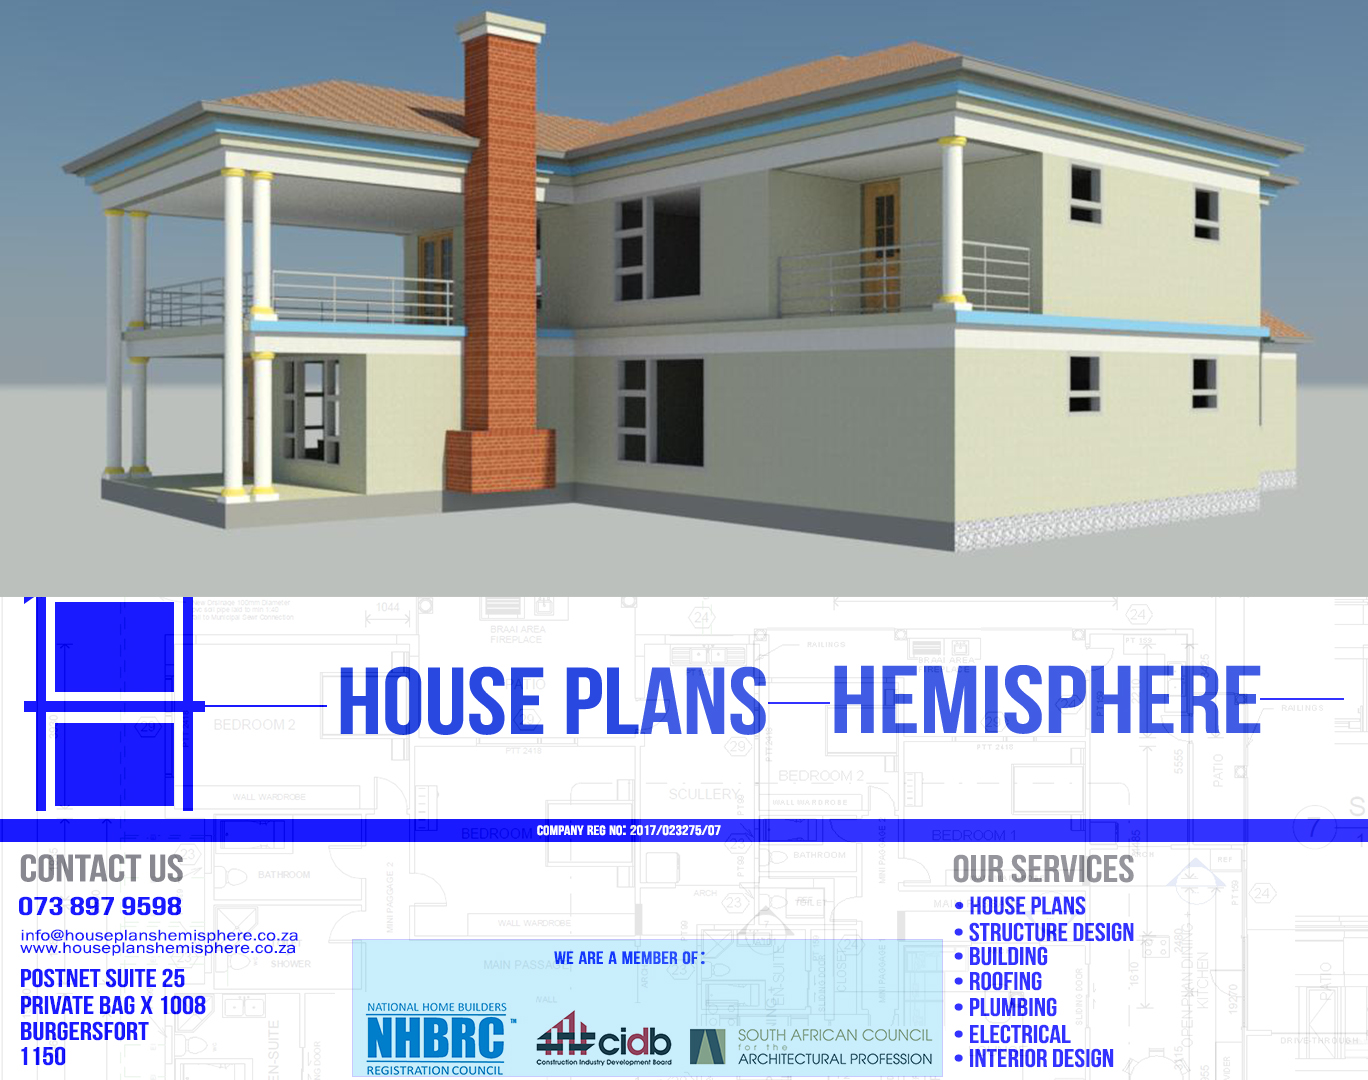 Double storey house plans in limpopo polokwane lebowakgomo burgersfort